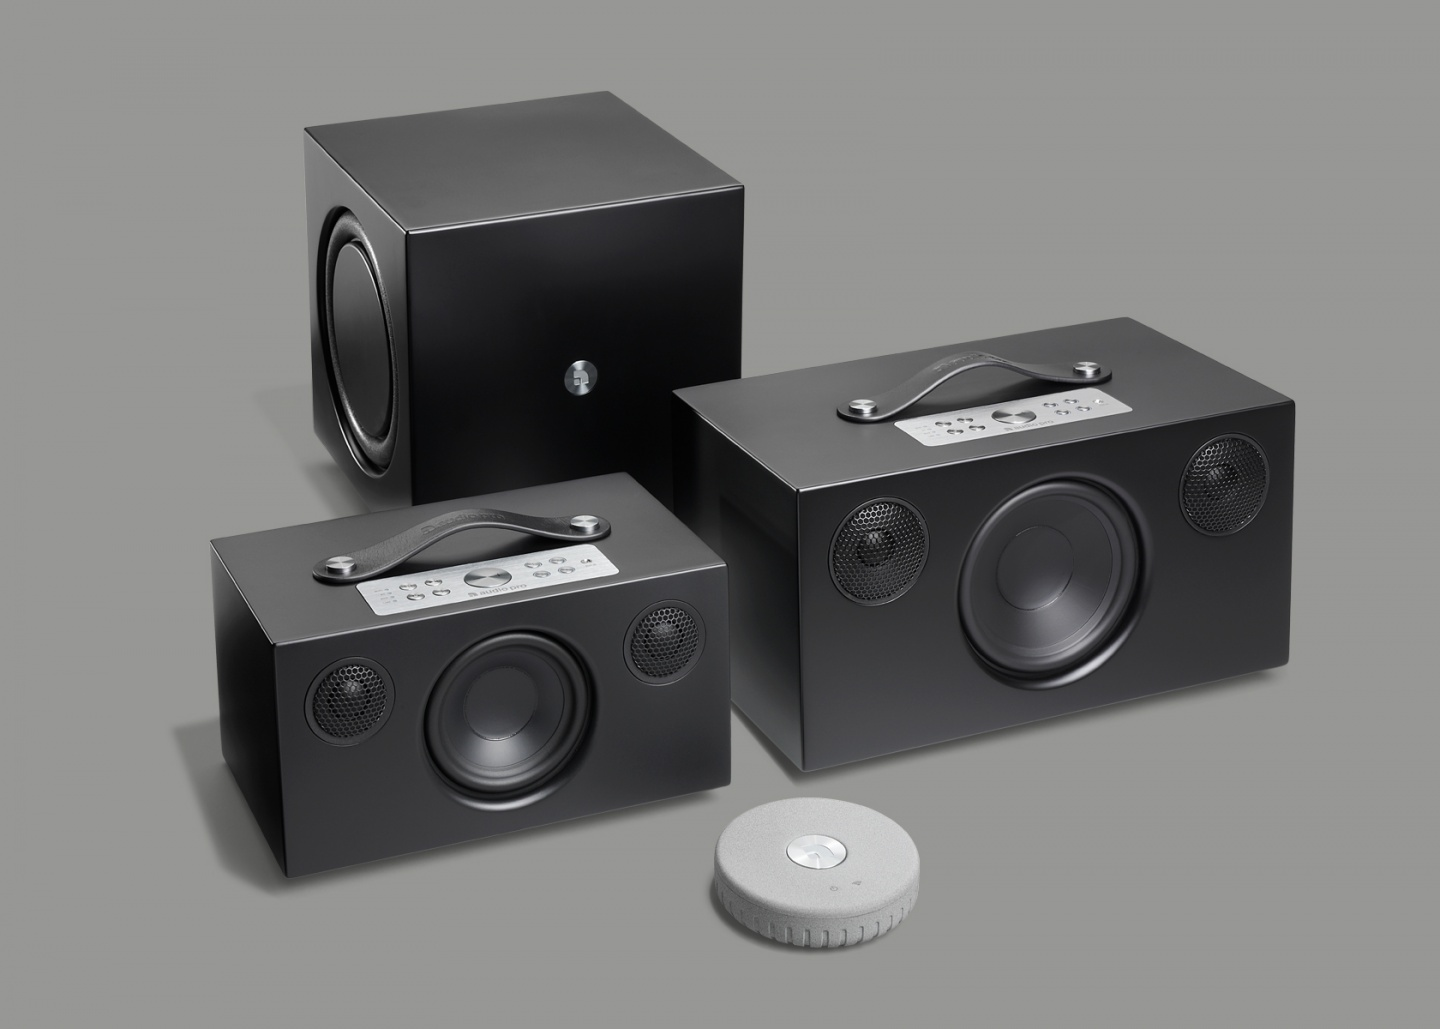 Sweden s acclaimed speaker manufacturer Audio Pro has an interesting range  of Multi-room products called the addon series. It consists of the midsize  ... 4ac4ee7c5a69f